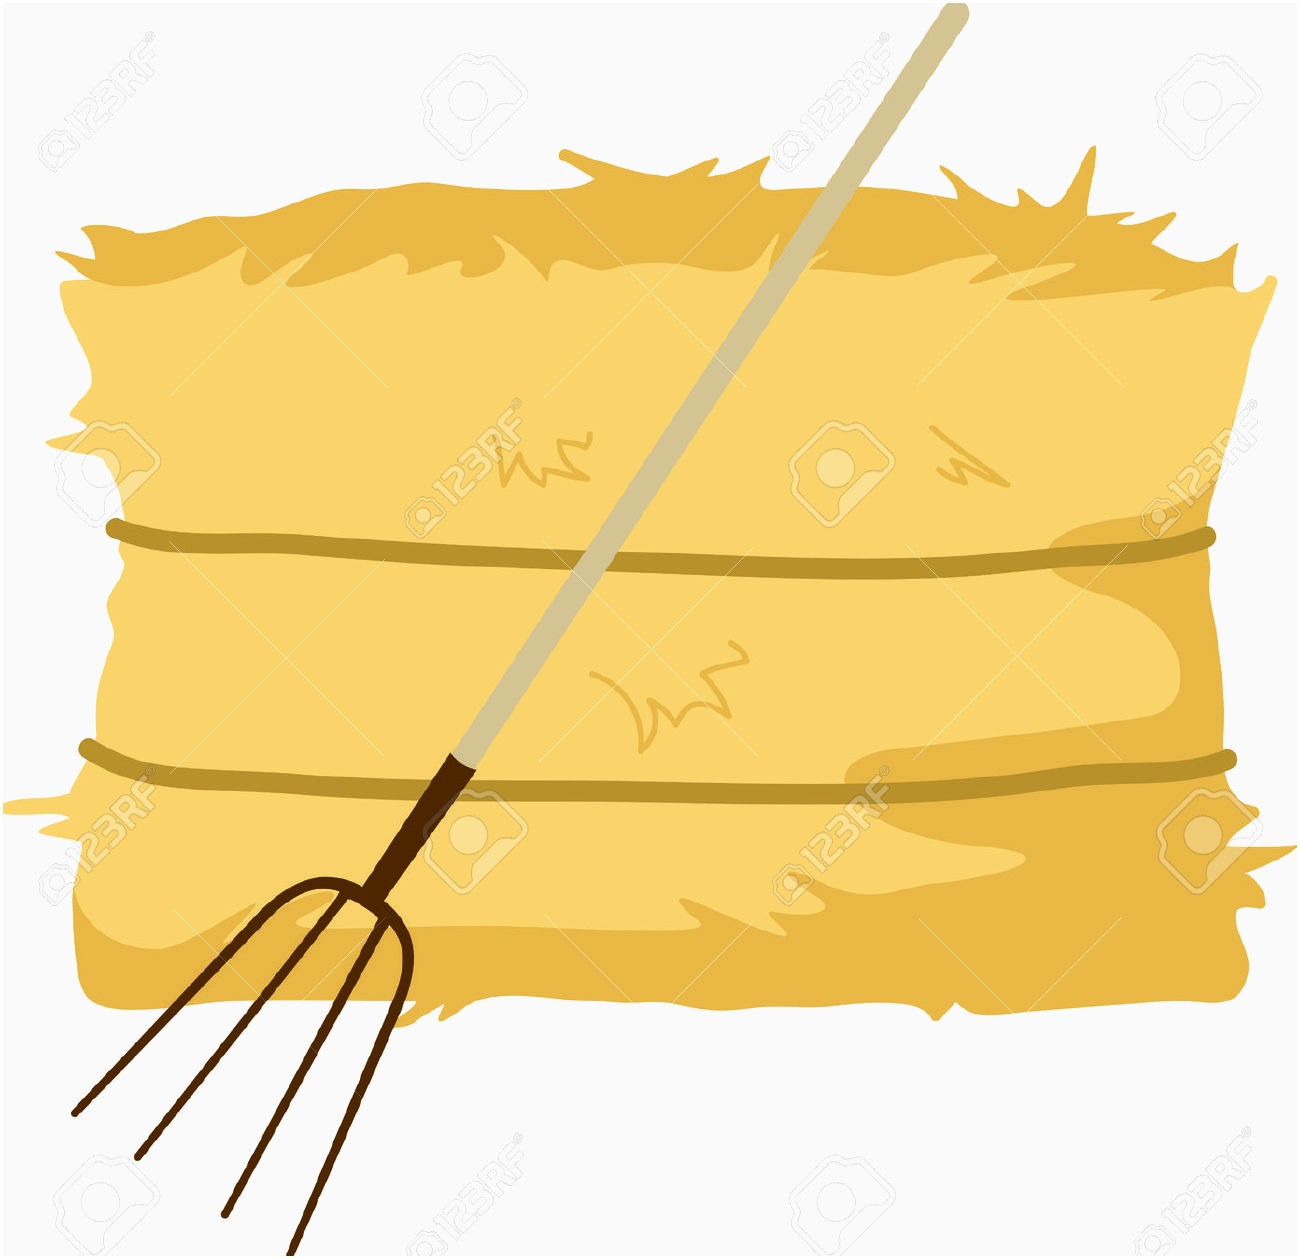 New straw bale clipground. Hay clipart